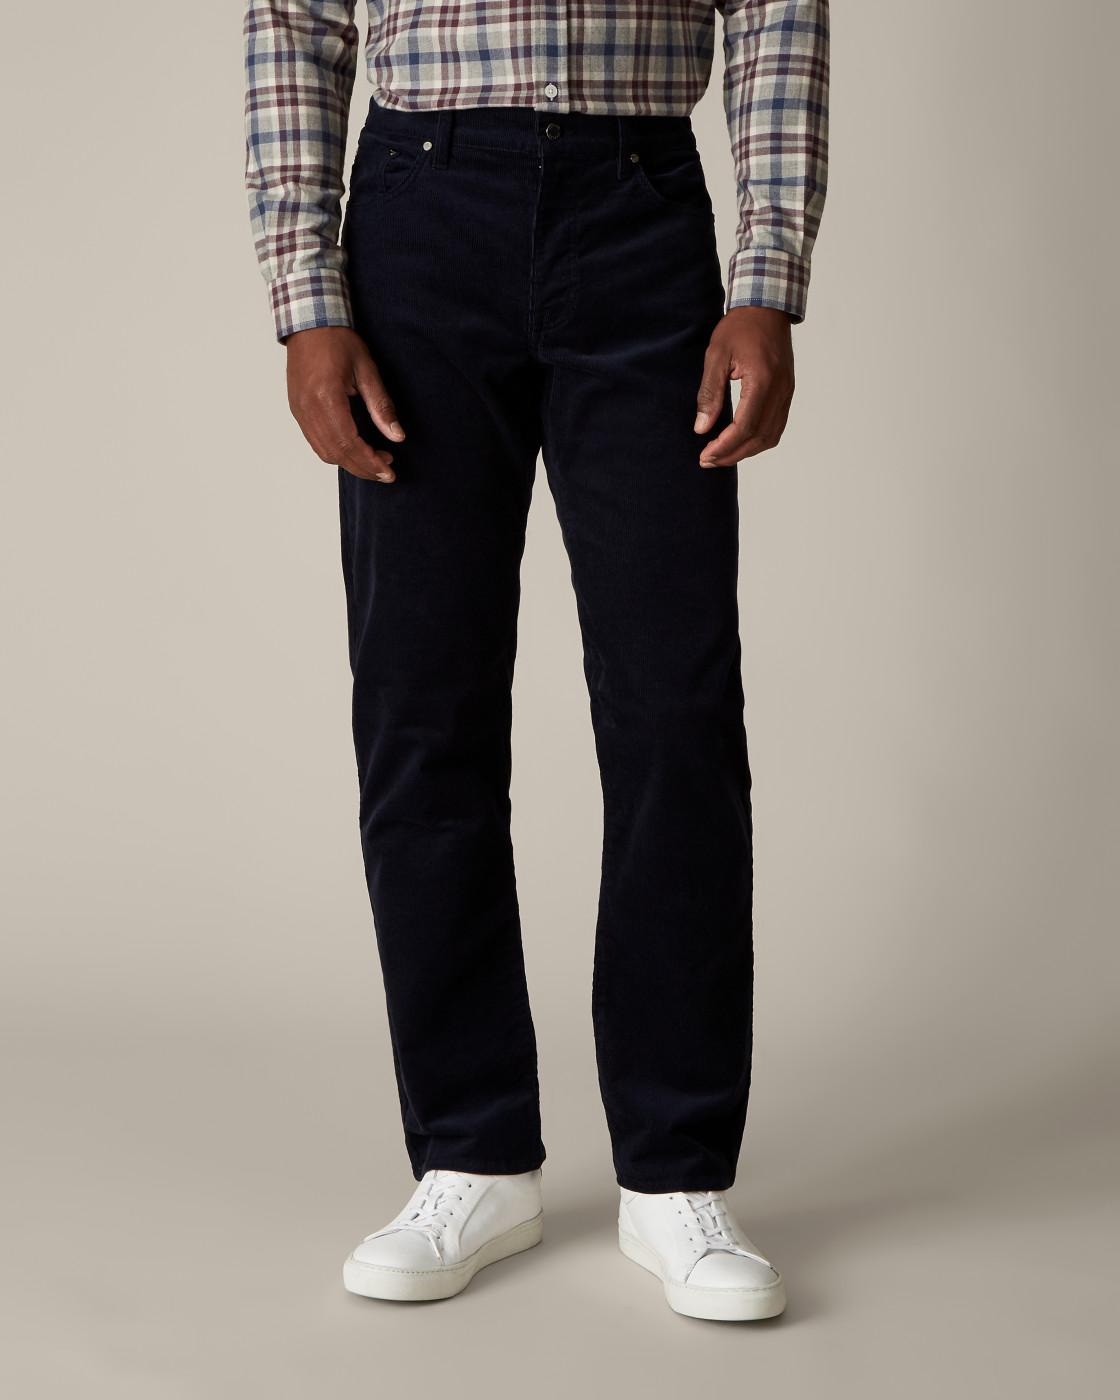 5 Pocket Corduroy Trousers By Jaeger